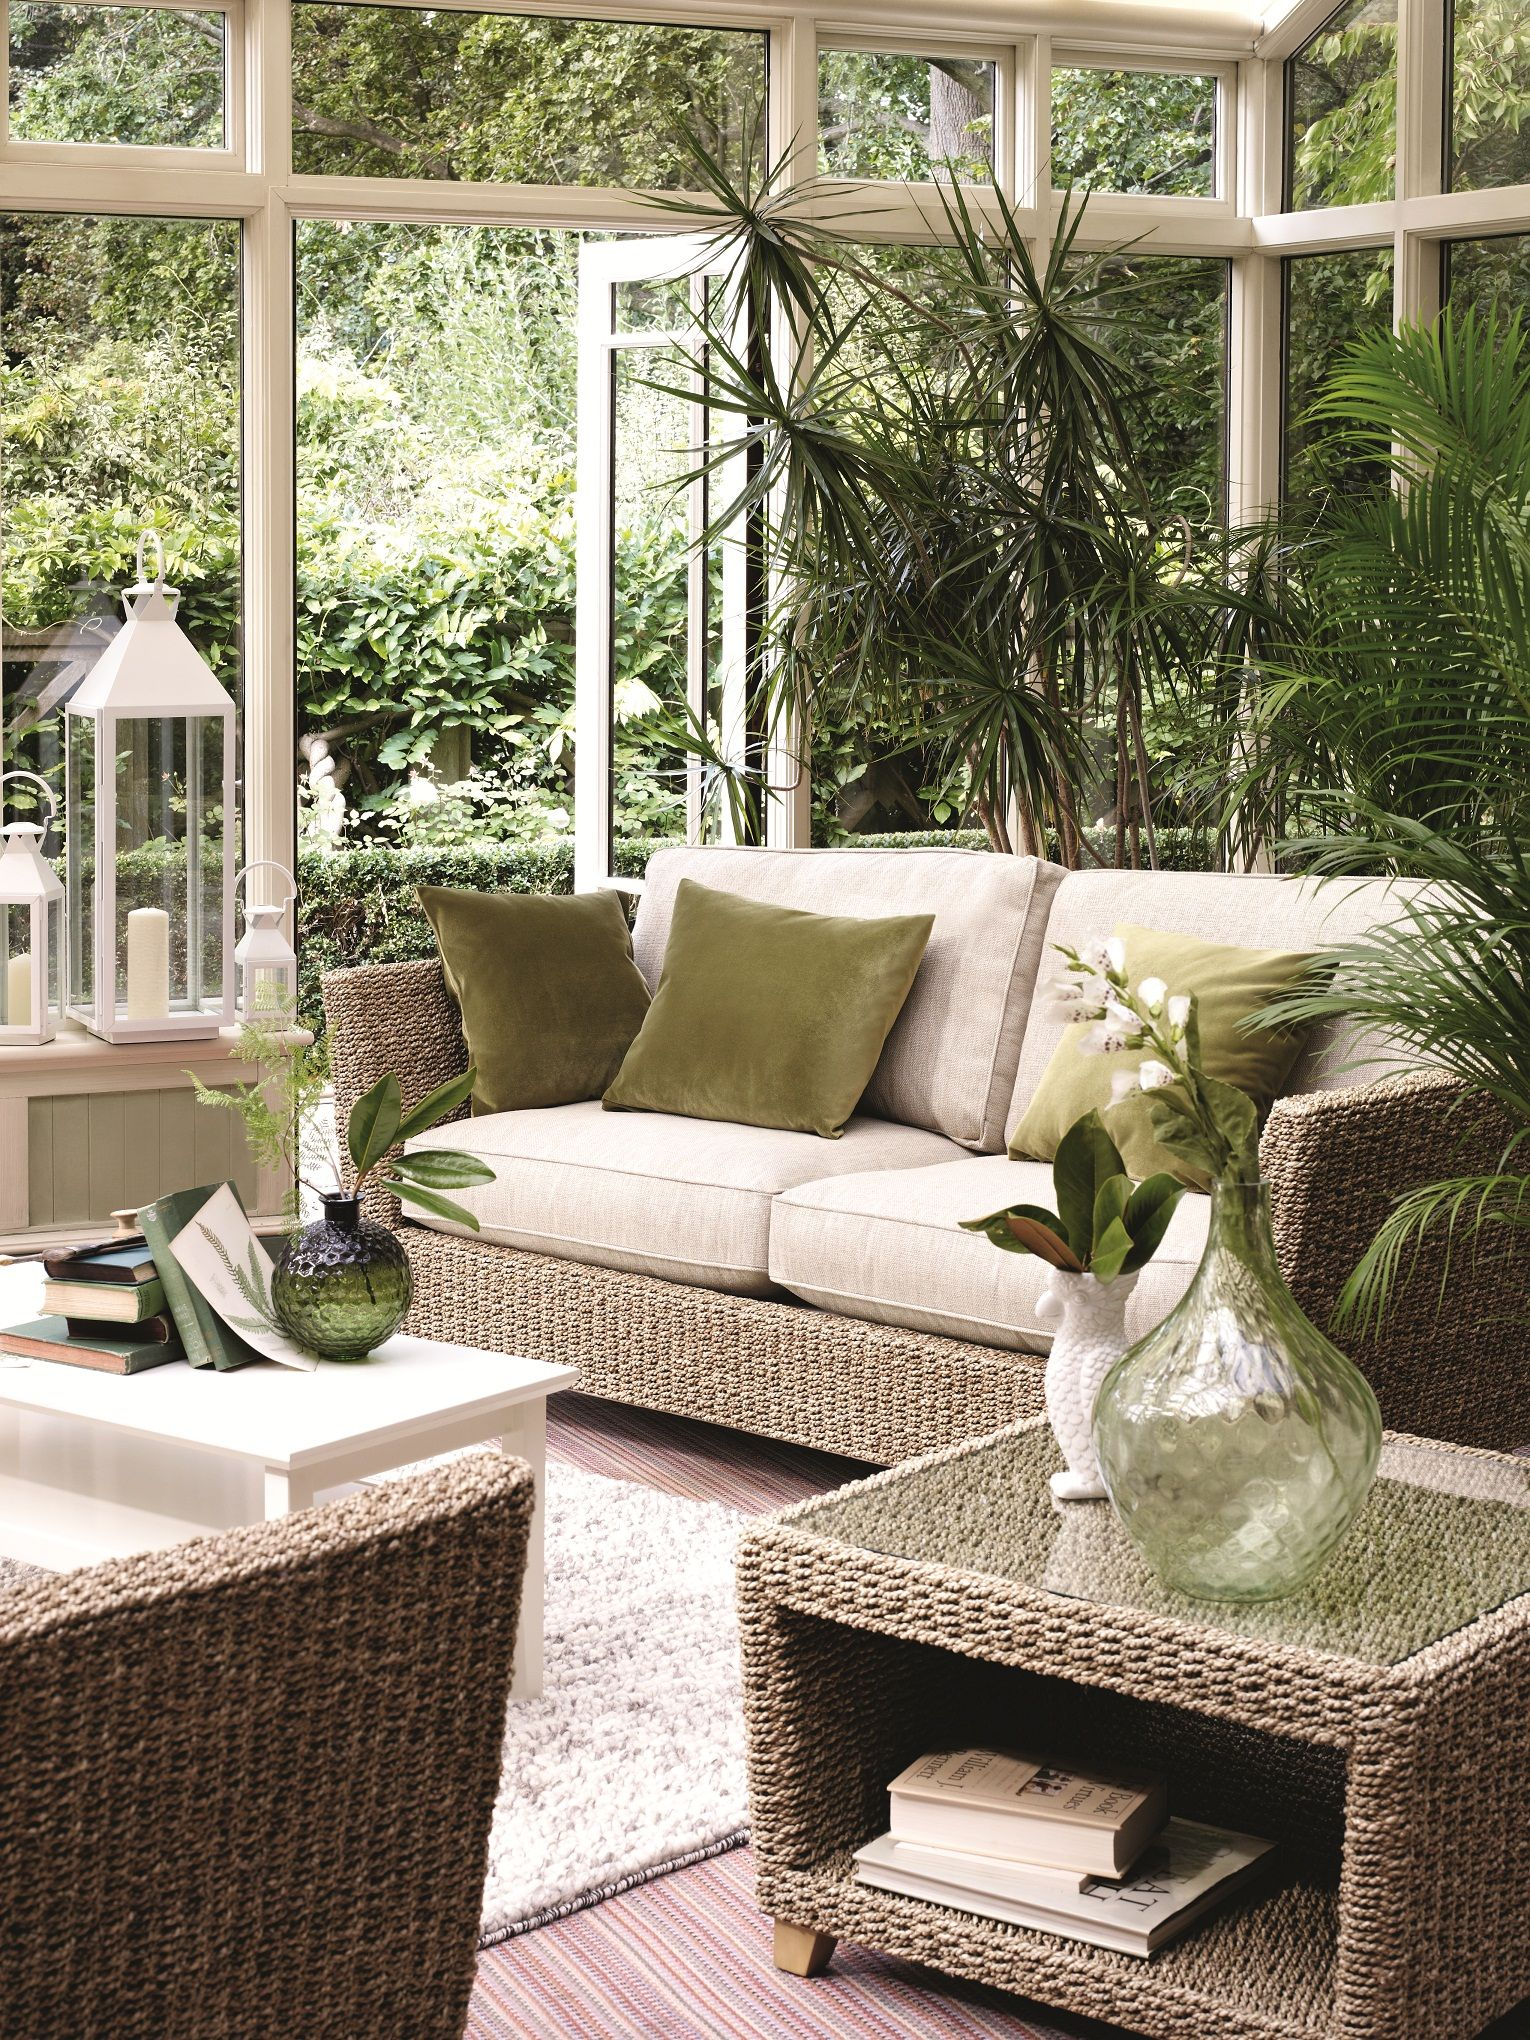 Ss15home Be At One With Nature This Suite Is The Perfect Size And Colour For Our Garden Lounge Conservatory Interior Sunroom Designs Conservatory Decor